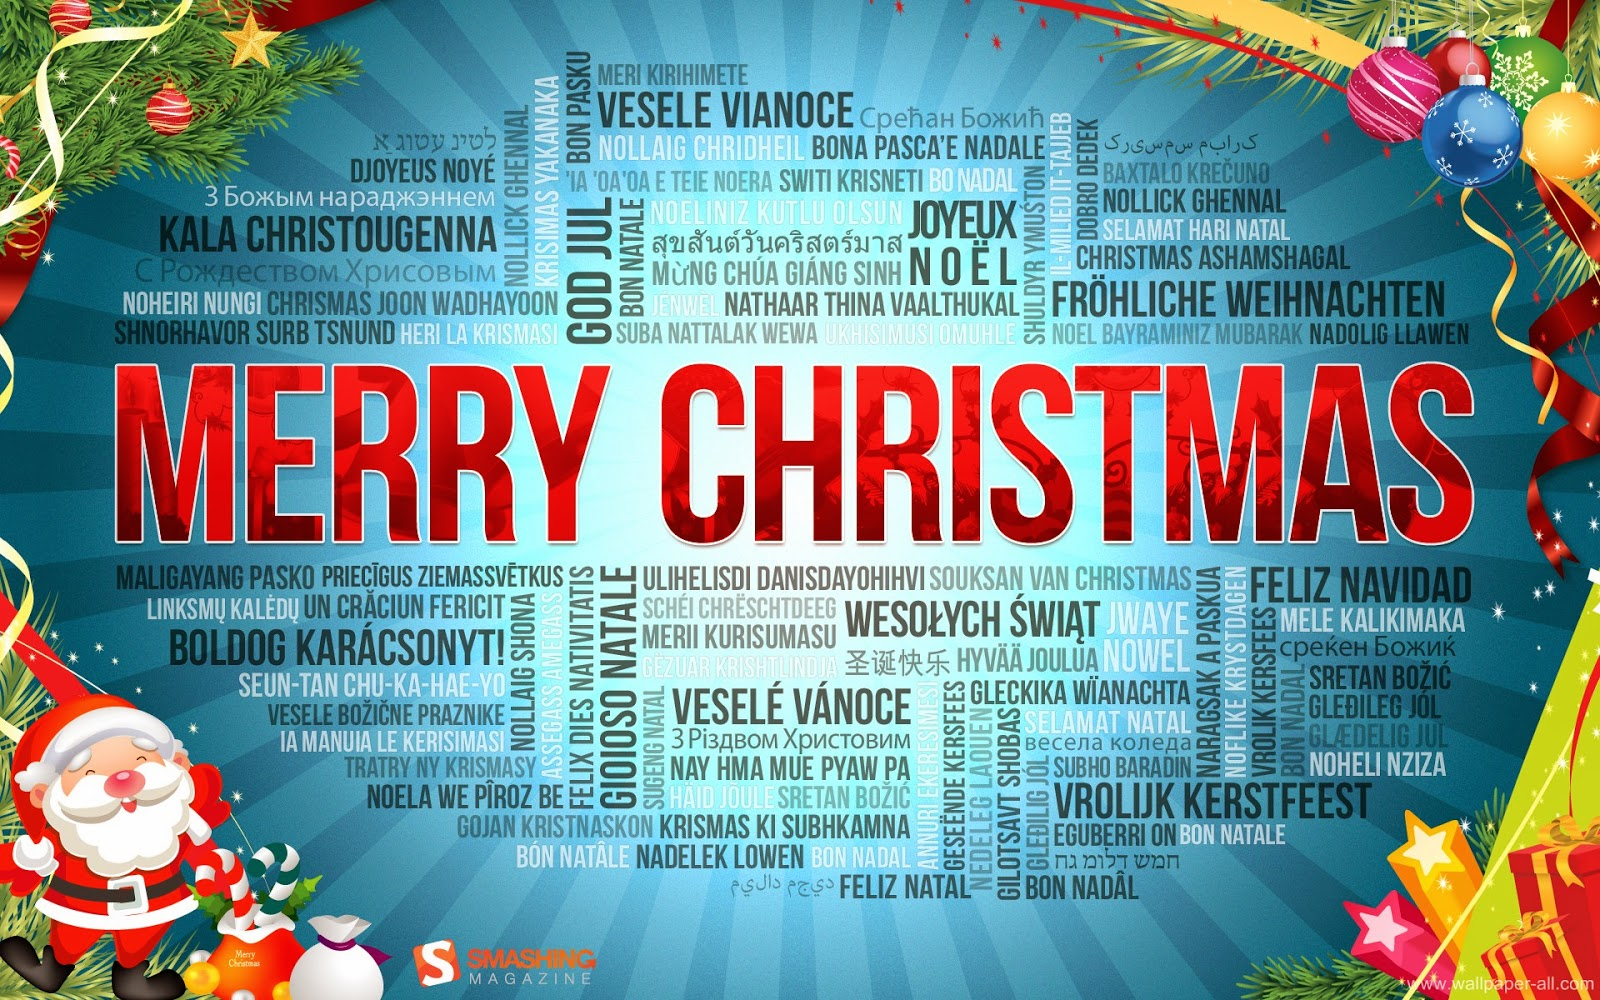 Merry Christmas 2014 Greetings Wishes In Different Languages No1